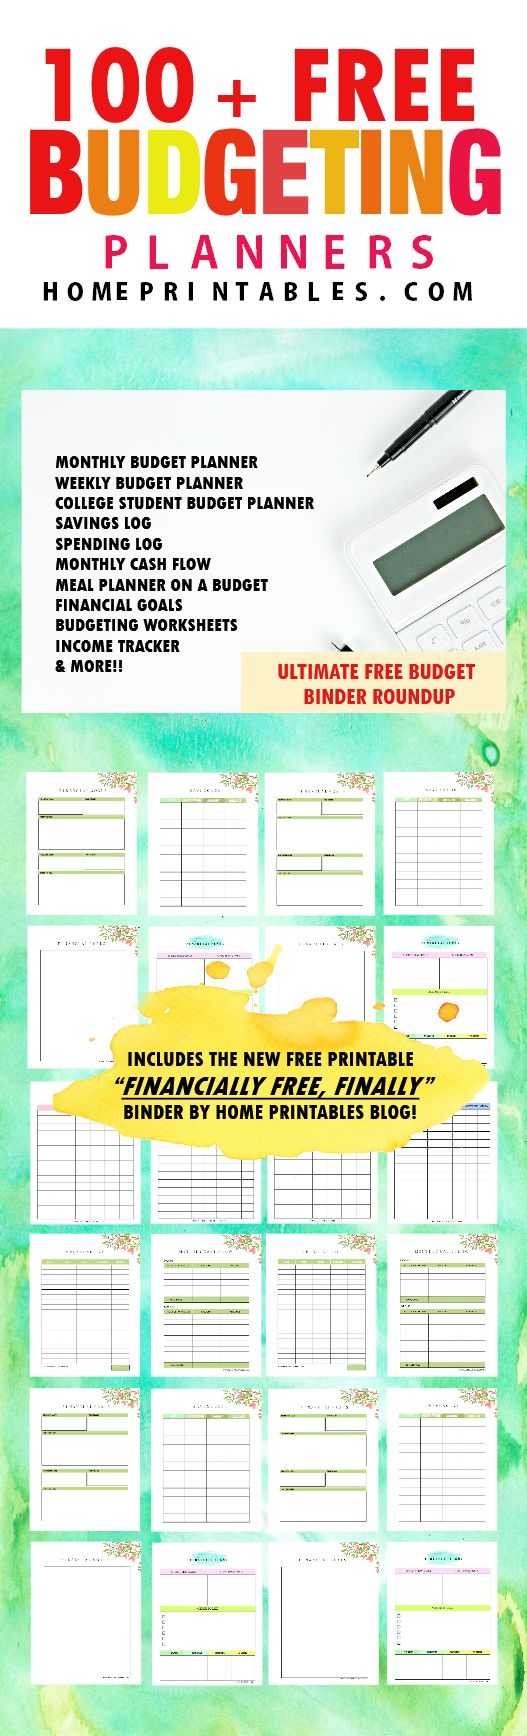 Here are over 100 free budgetting printables to help you organize your finances. Time to finally pick the free budget binder that works for you!